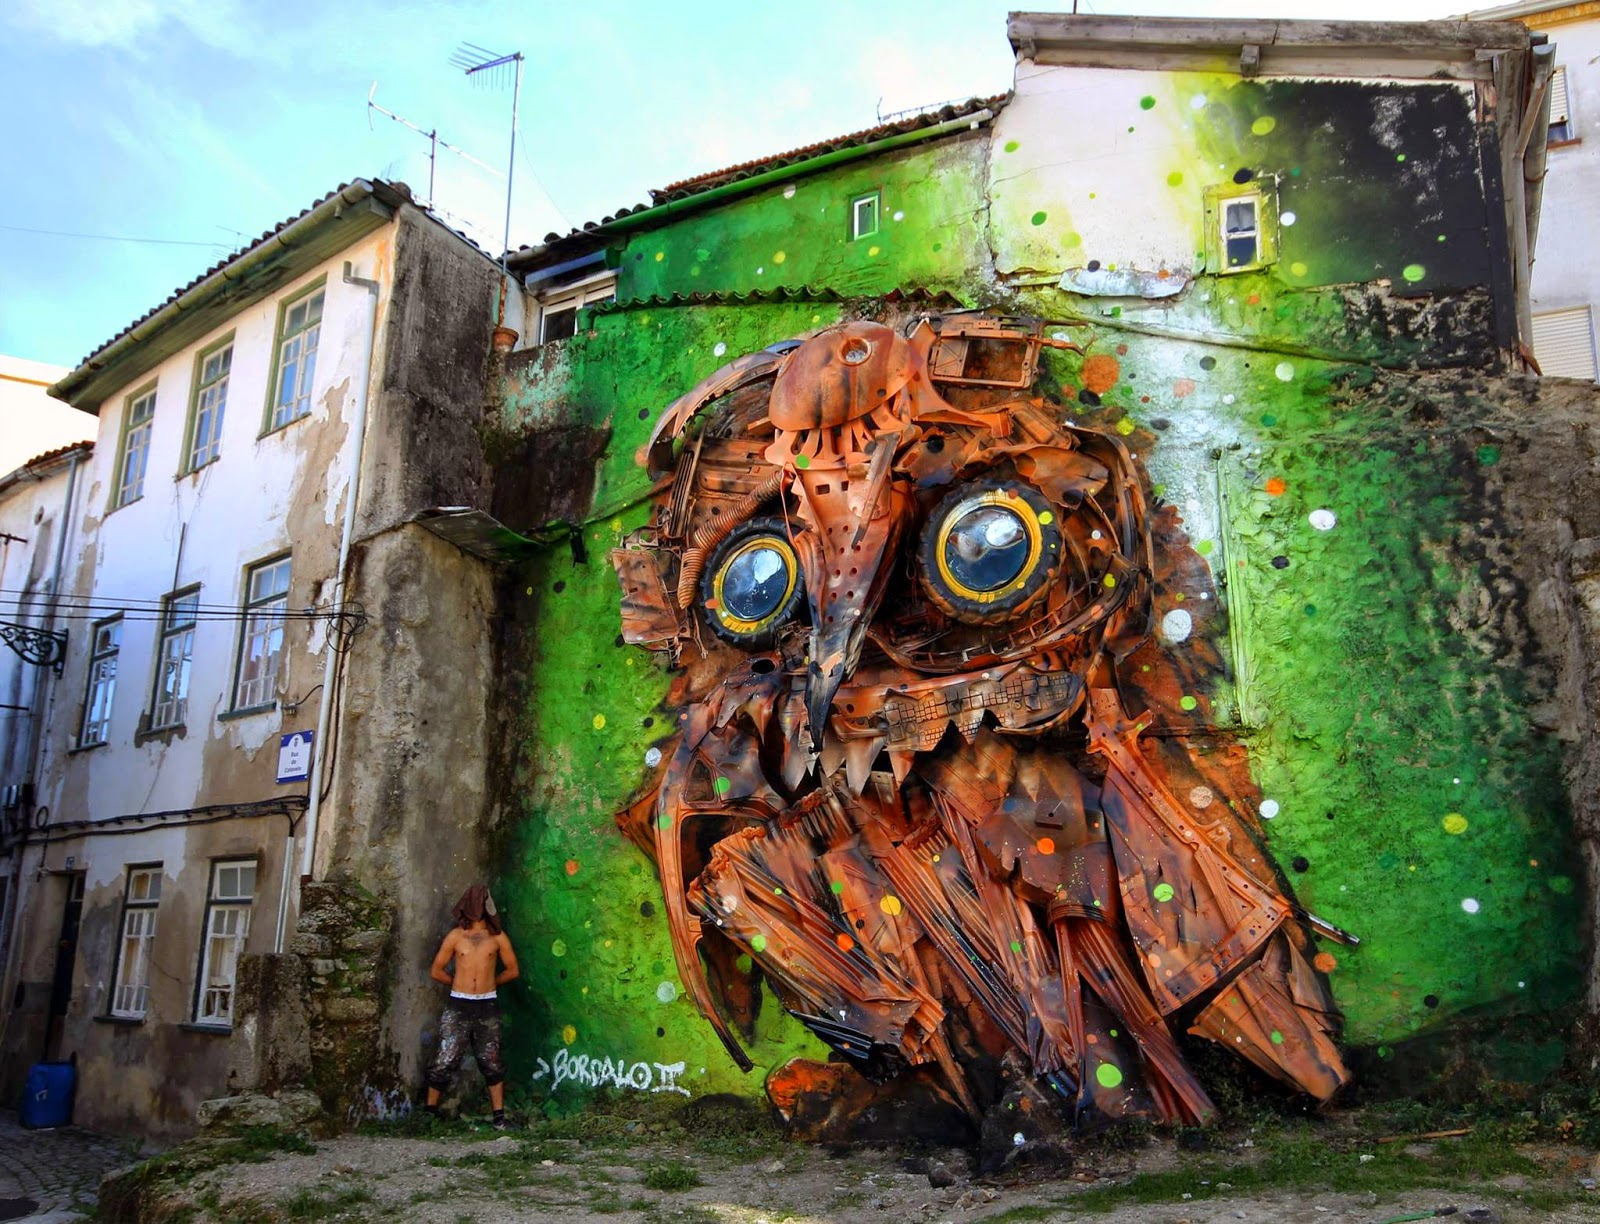 Our friend Bordalo II recently stopped by the lovely city of Covhila in Portugal where he was invited to work on a new installation for the excellent Wool Festival.